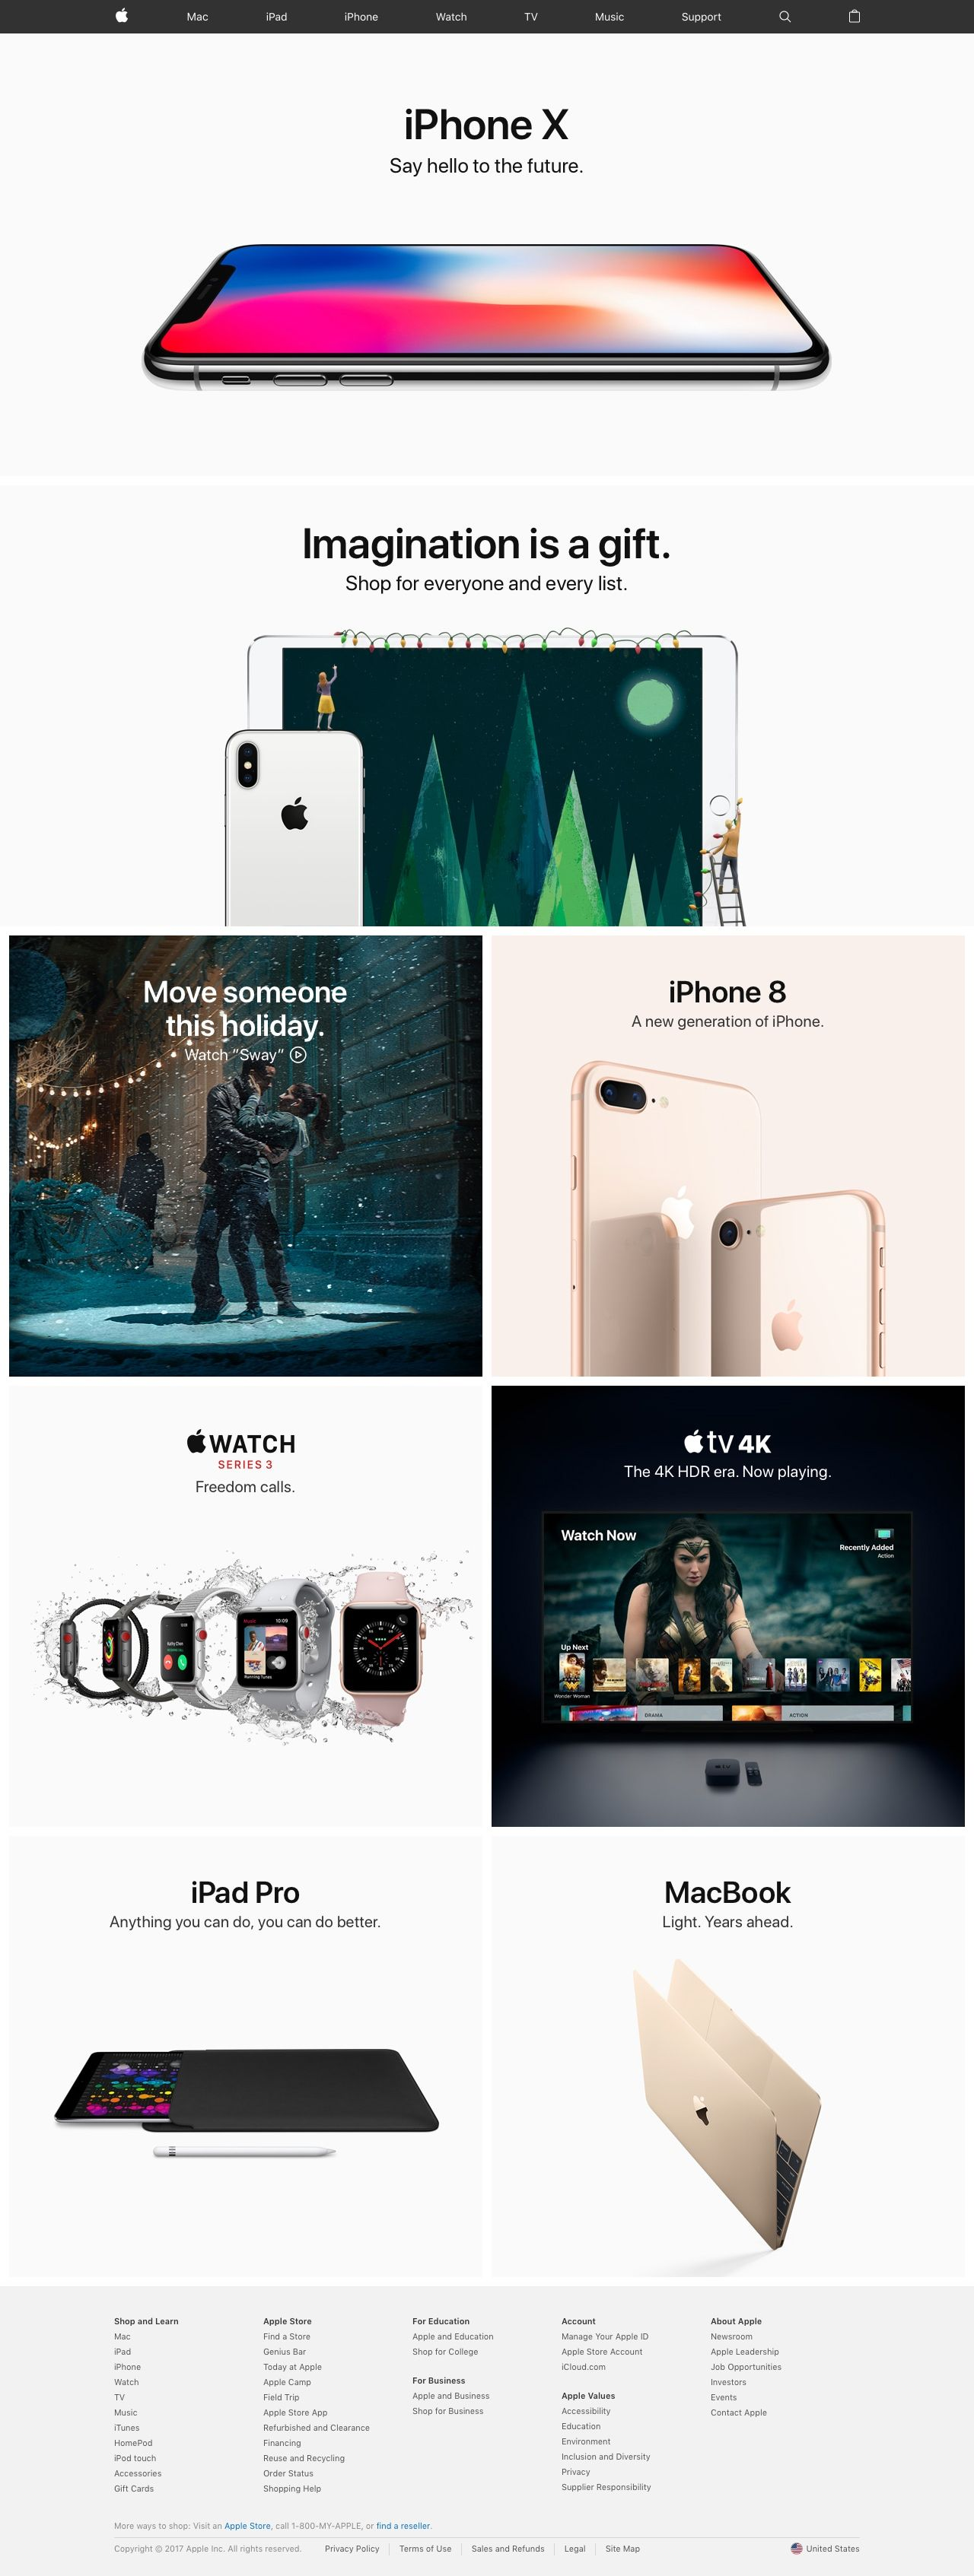 Apple Say Hello To The Future Best Landing Page Design Page Design Landing Page Design